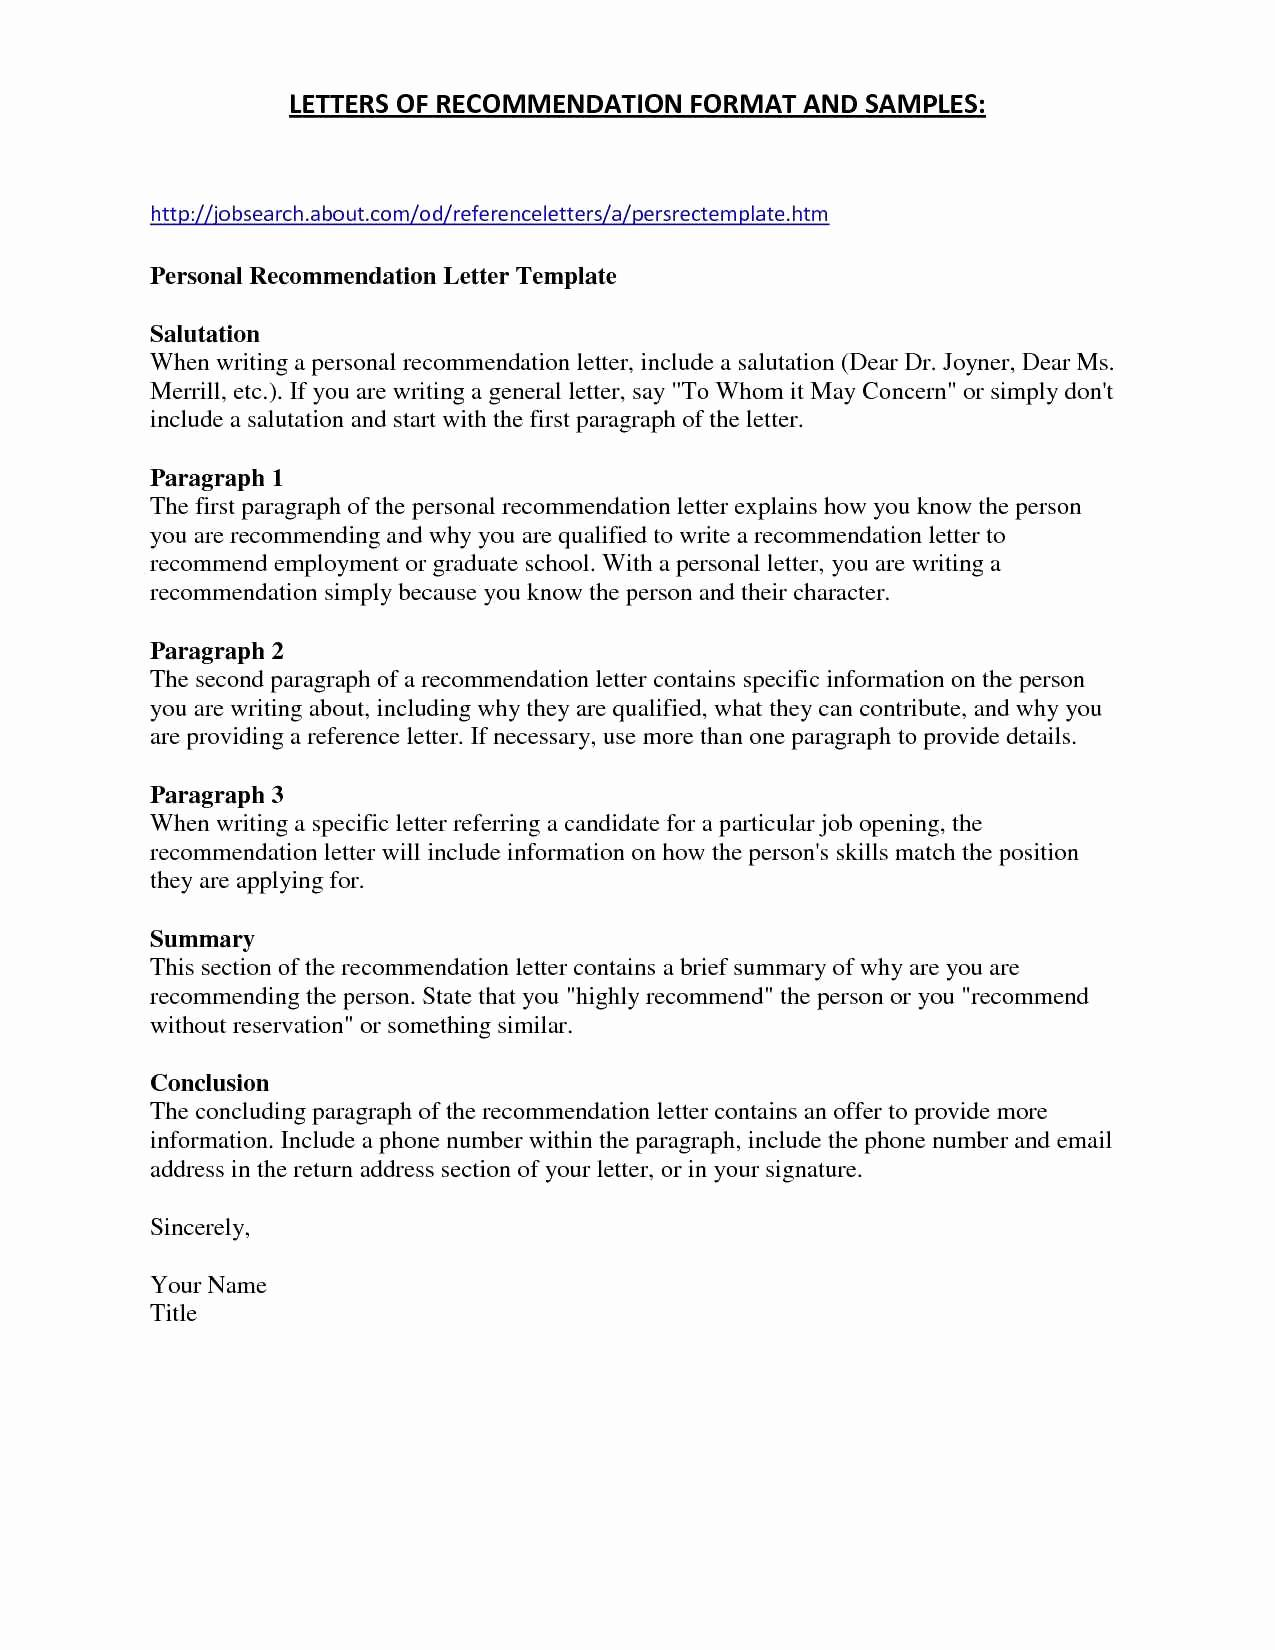 Relocation Cover Letter Template - Cover Letter for Moving to Another State Awesome It Covering Letter